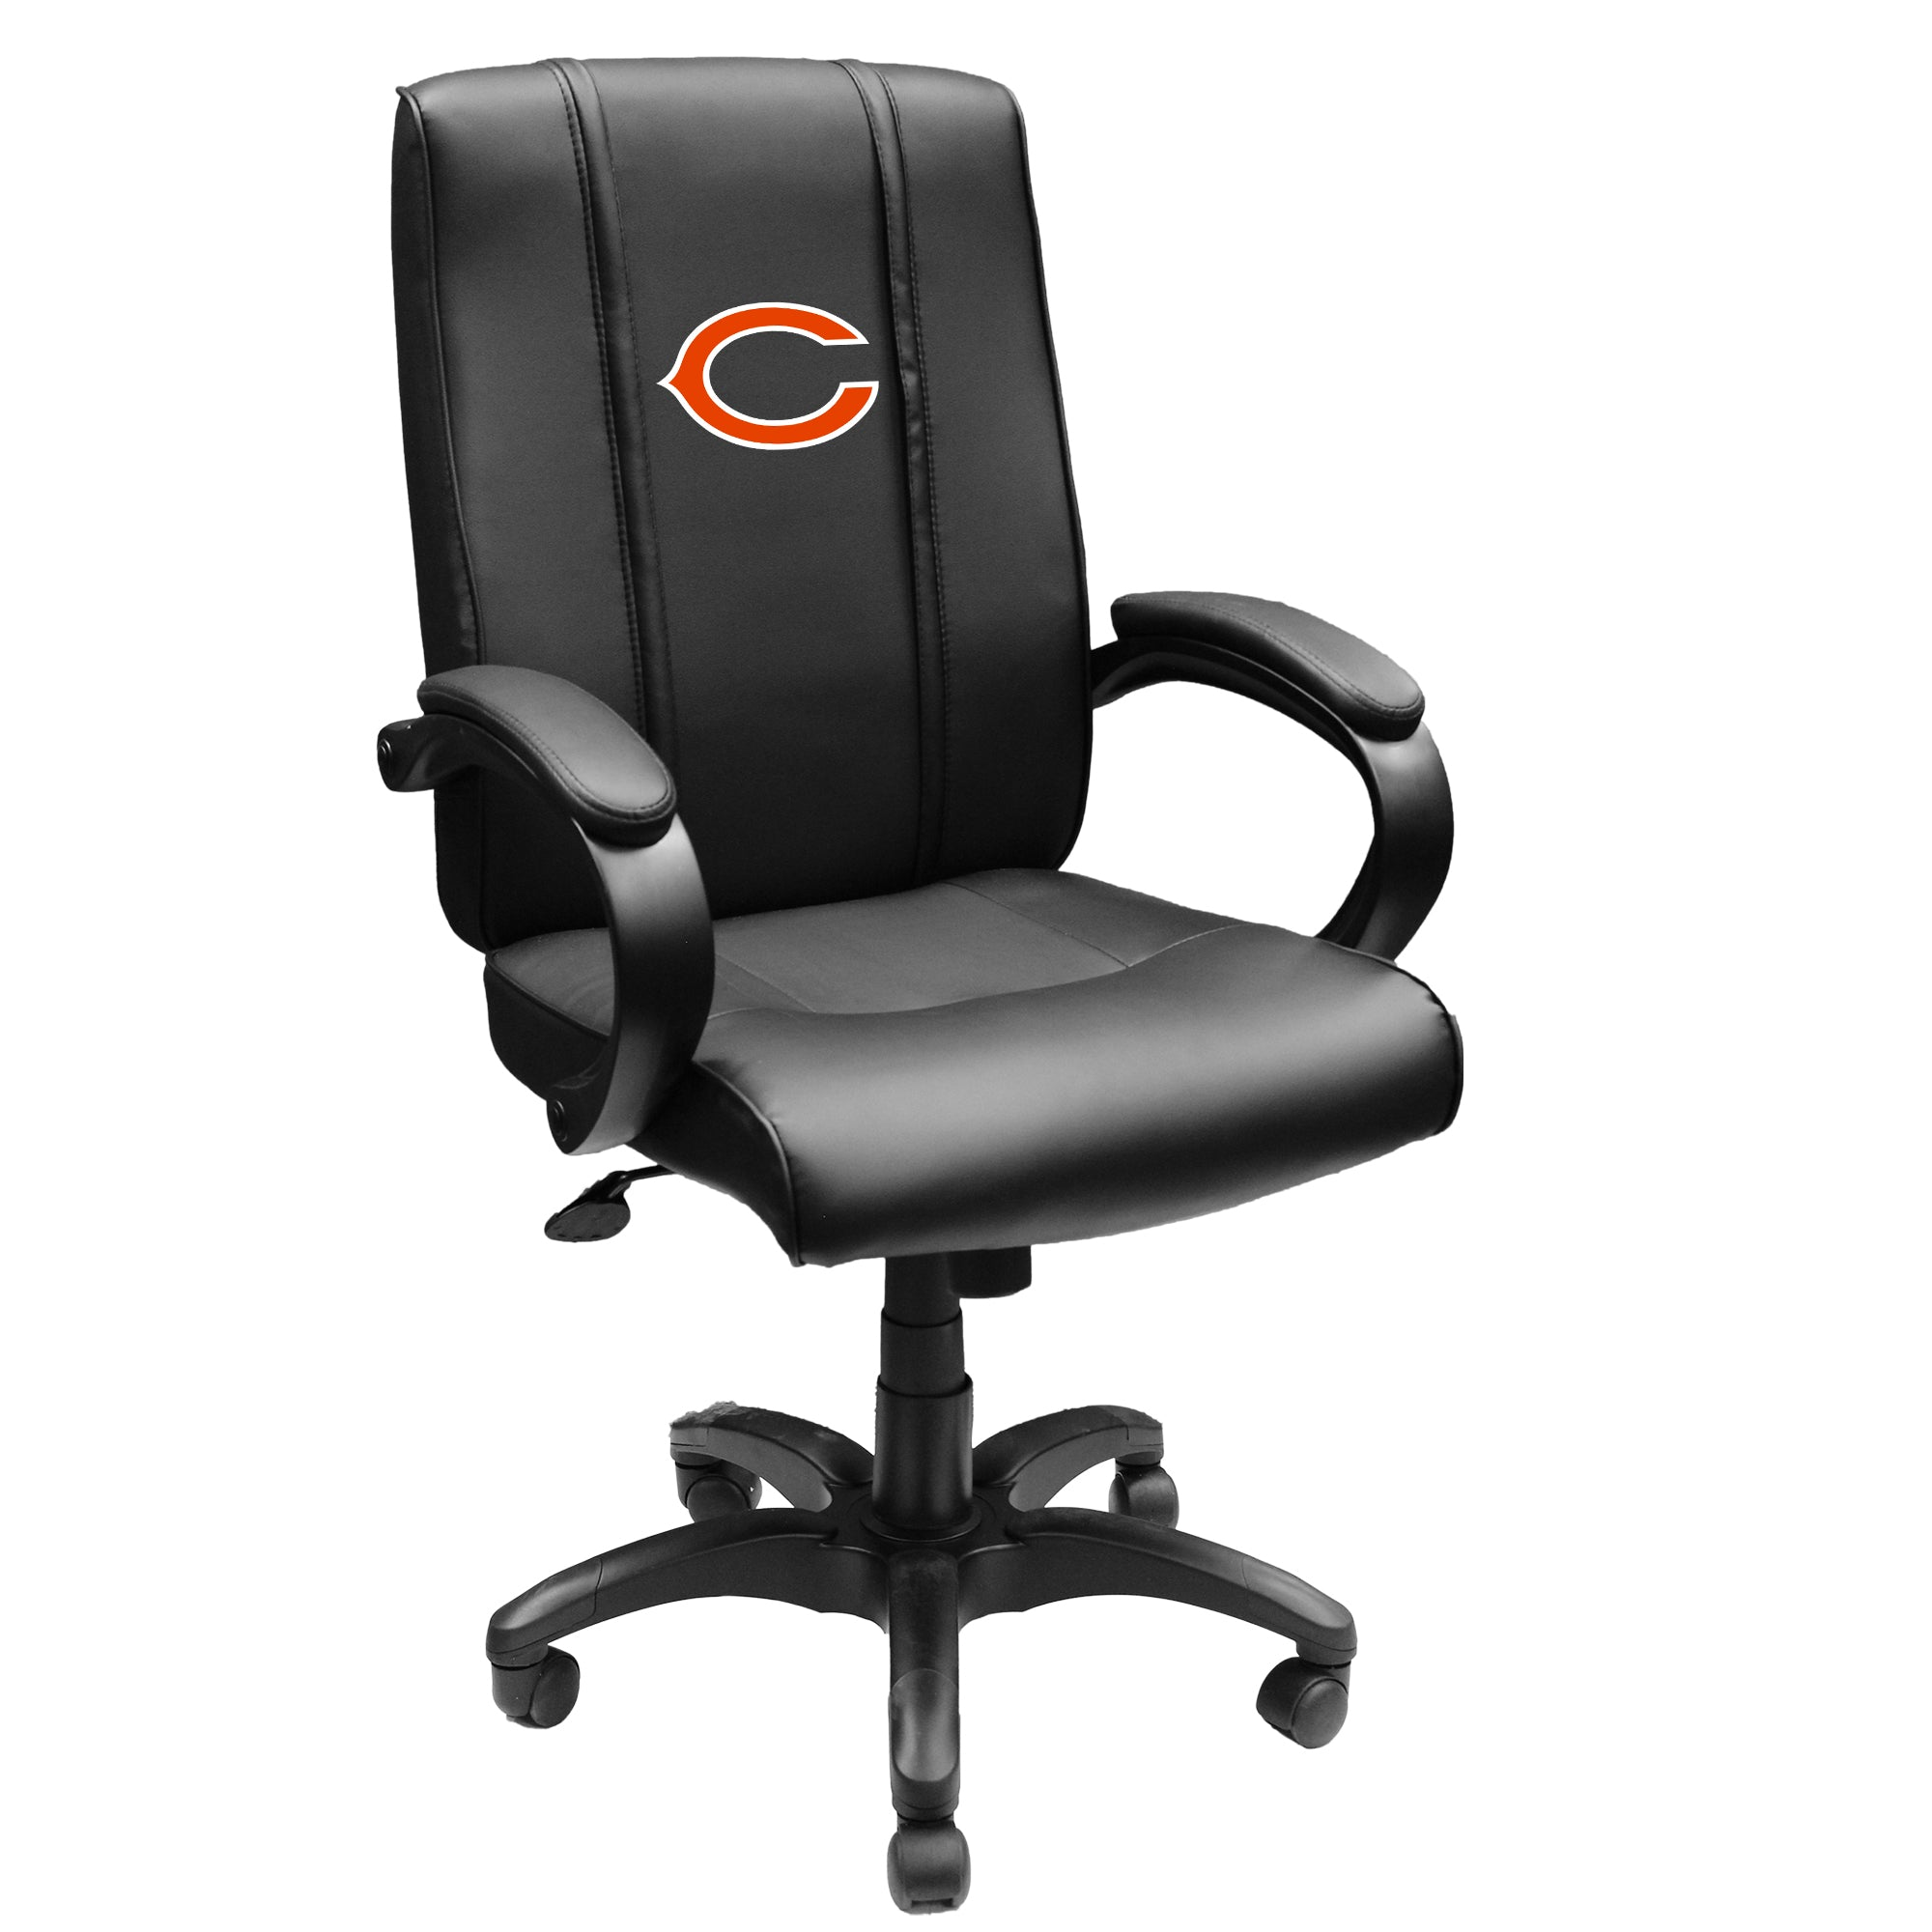 Office Chair 1000 with  Chicago Bears Primary Logo